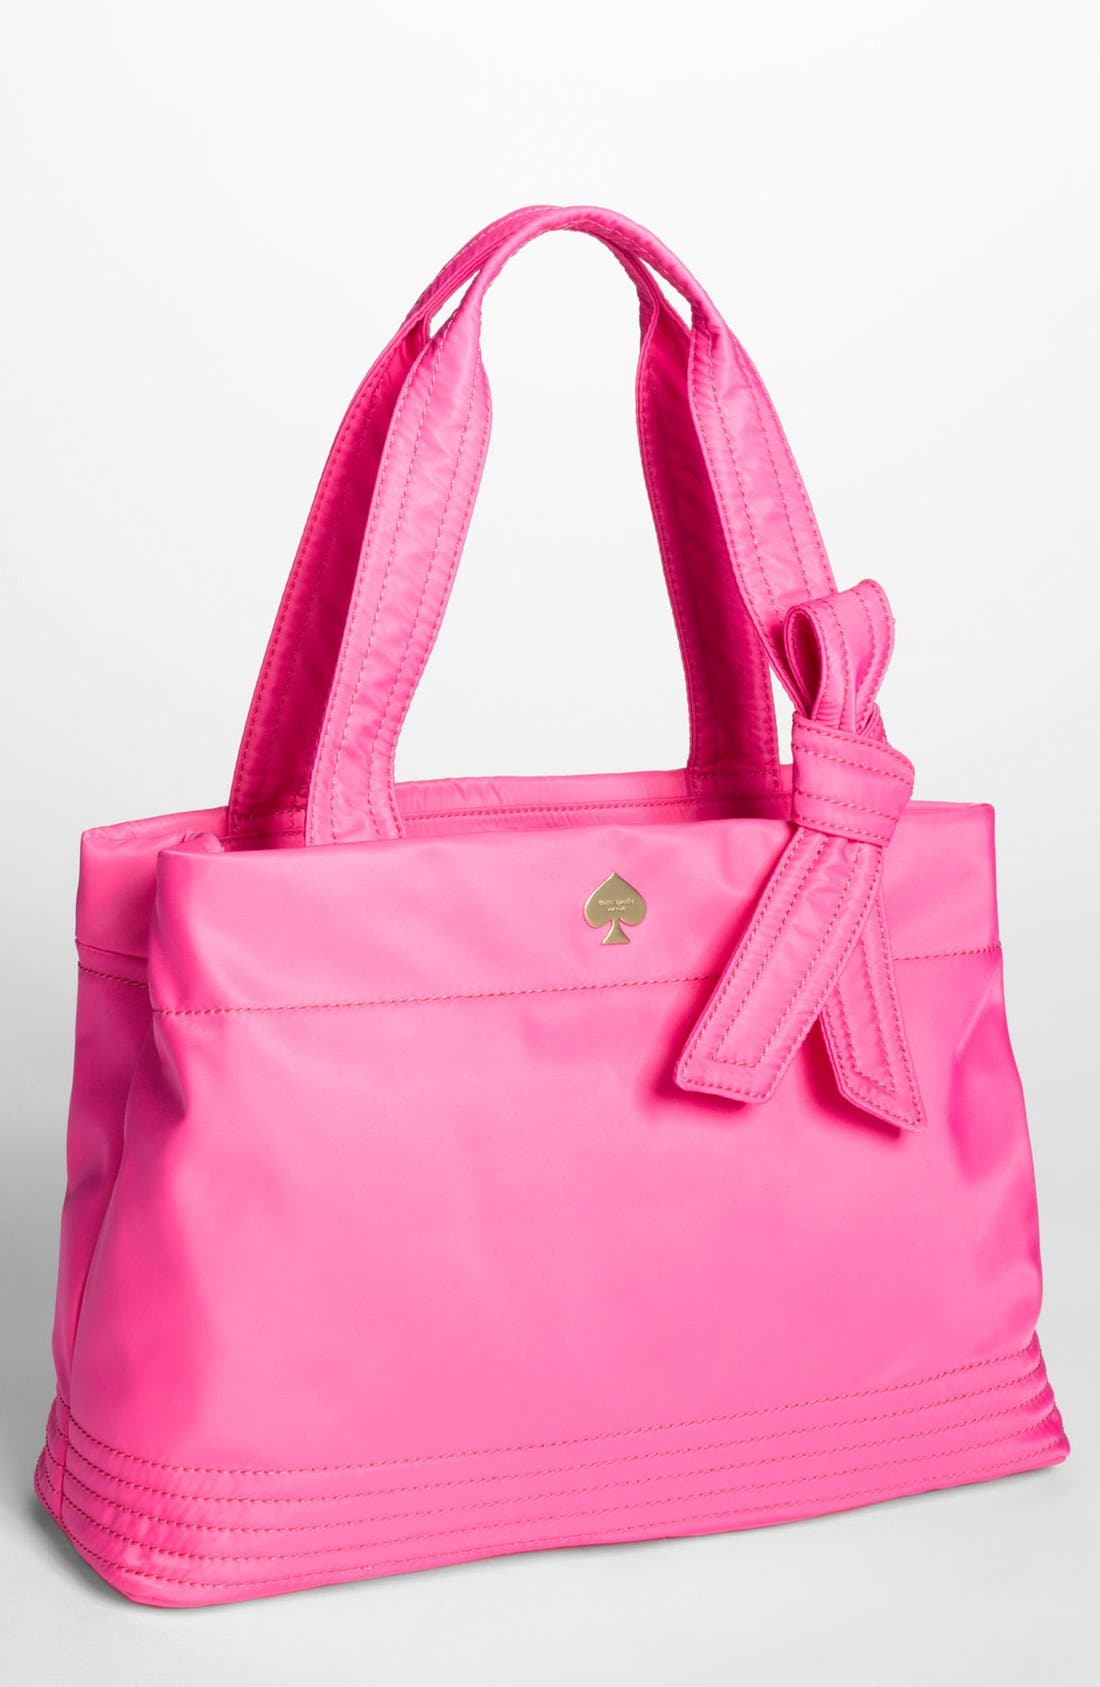 Main Image - kate spade new york 'flatiron - maryanne' nylon shopper, Large